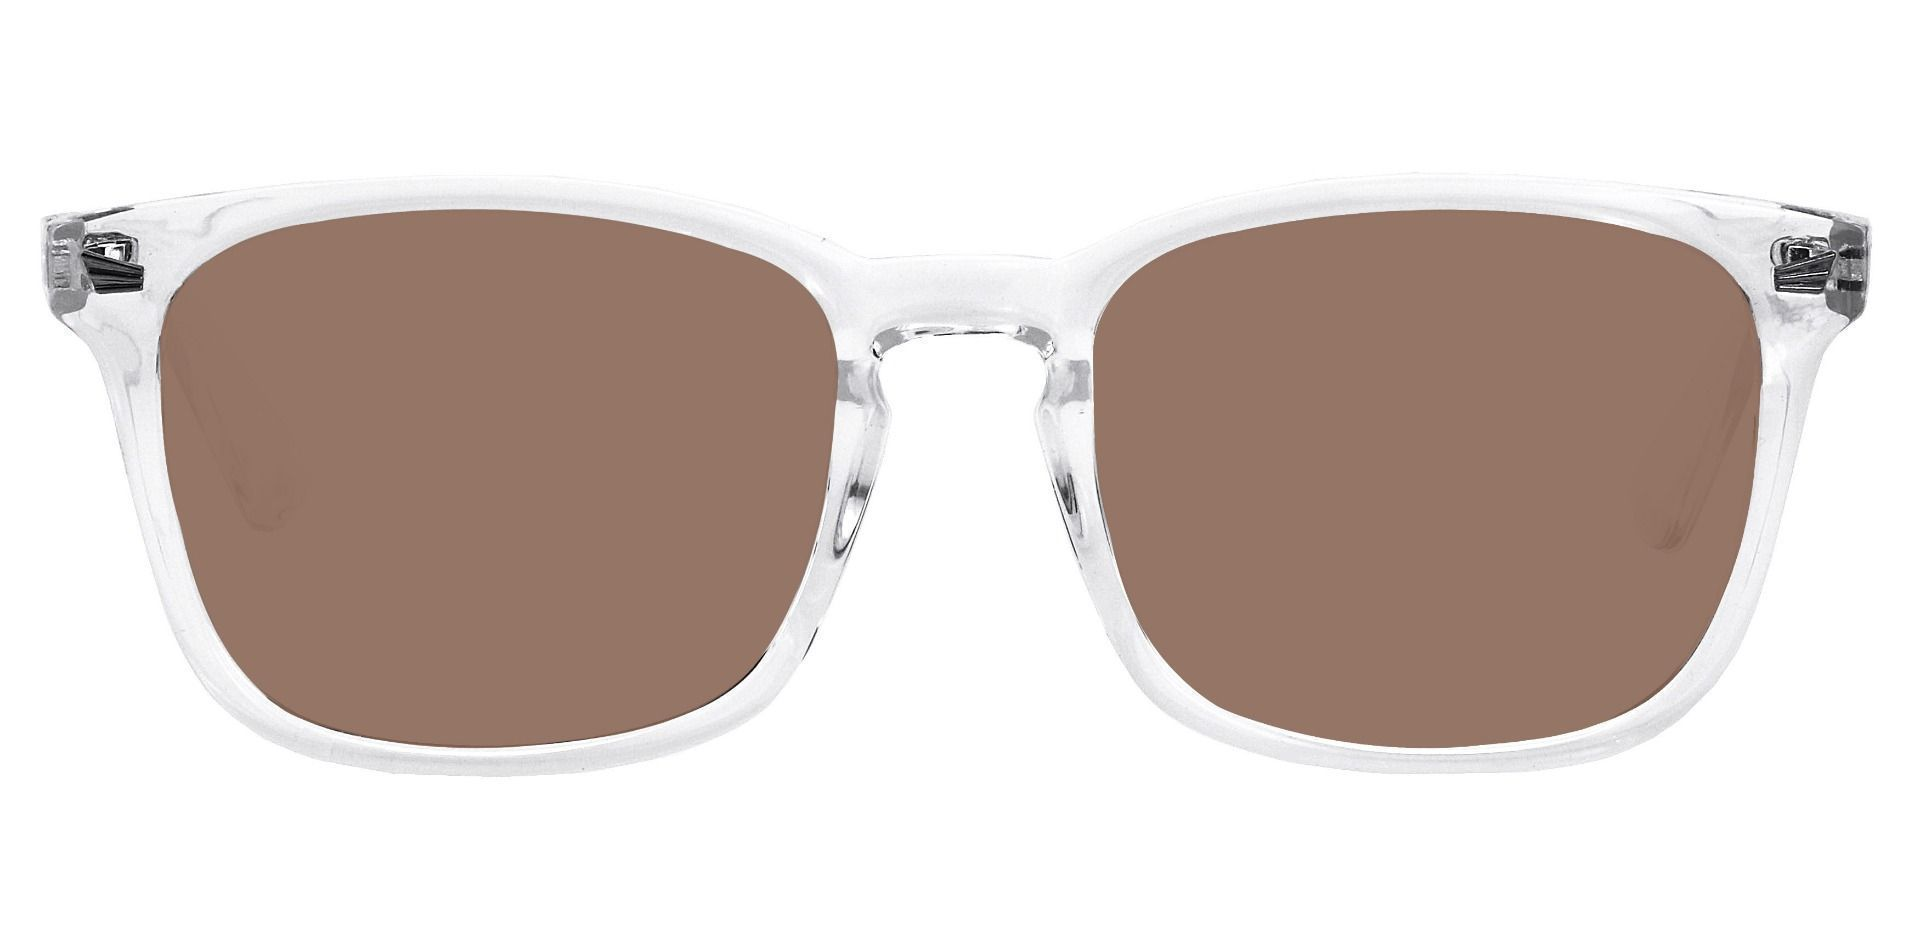 Rogan Square Reading Sunglasses - Clear Frame With Brown Lenses